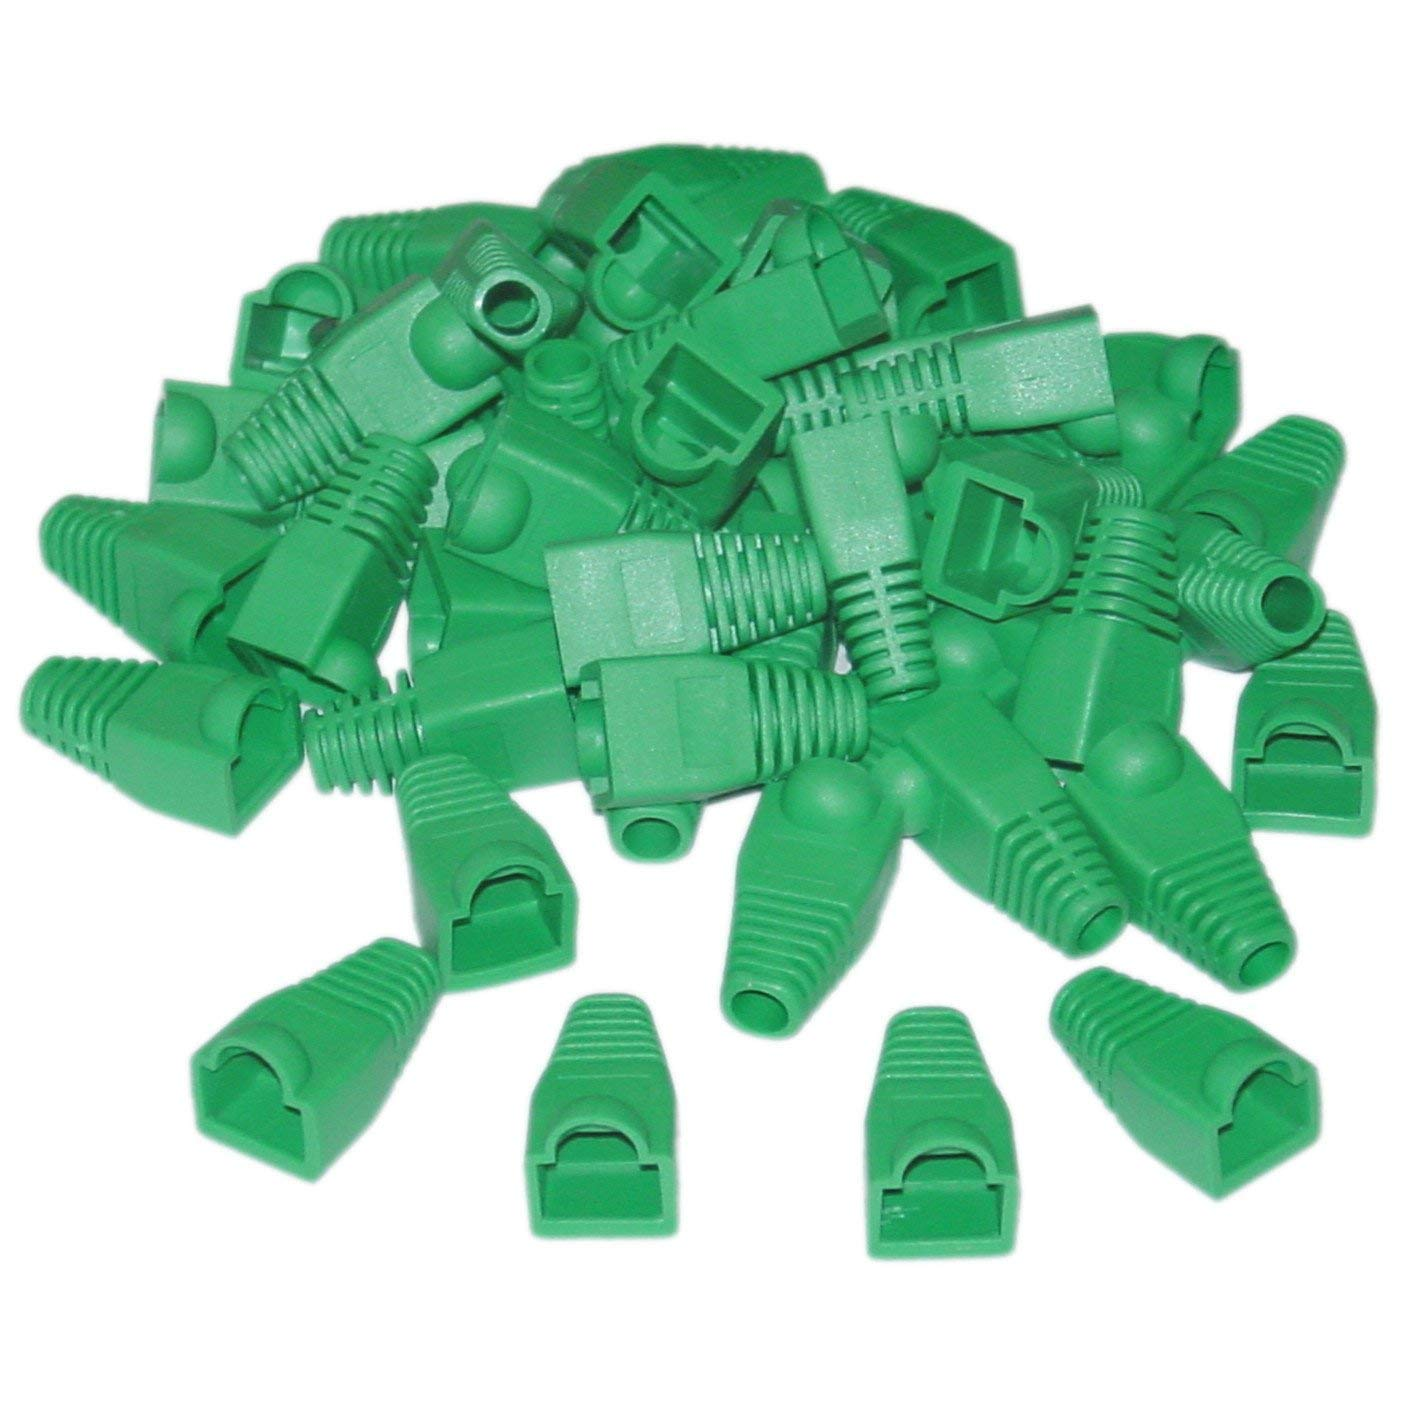 GOWOS RJ45 Strain Relief Boots, Green, 50 Pieces Per Bag - Coded Modular Shielded Plug Mod Ethernet Connector